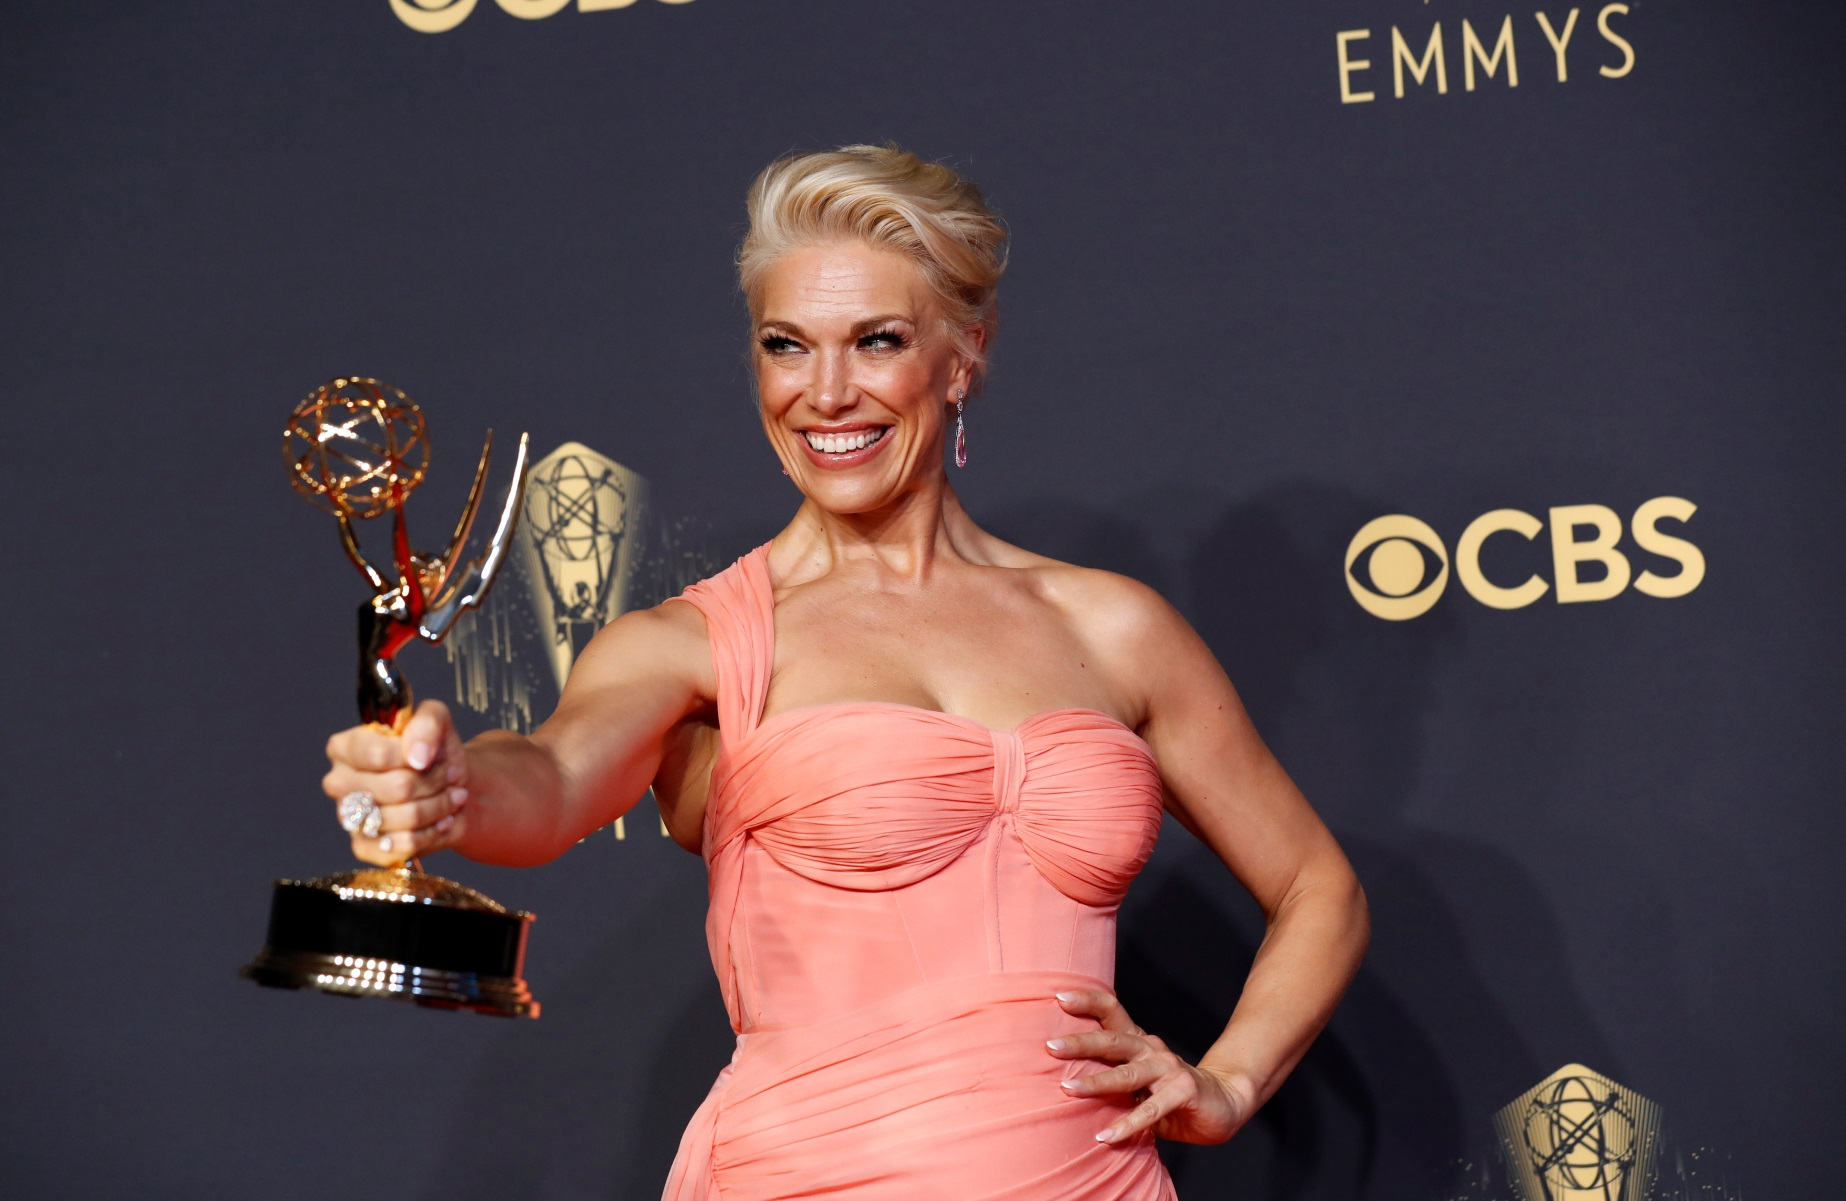 EMMYS2021 1 Reuters 20 09 2021